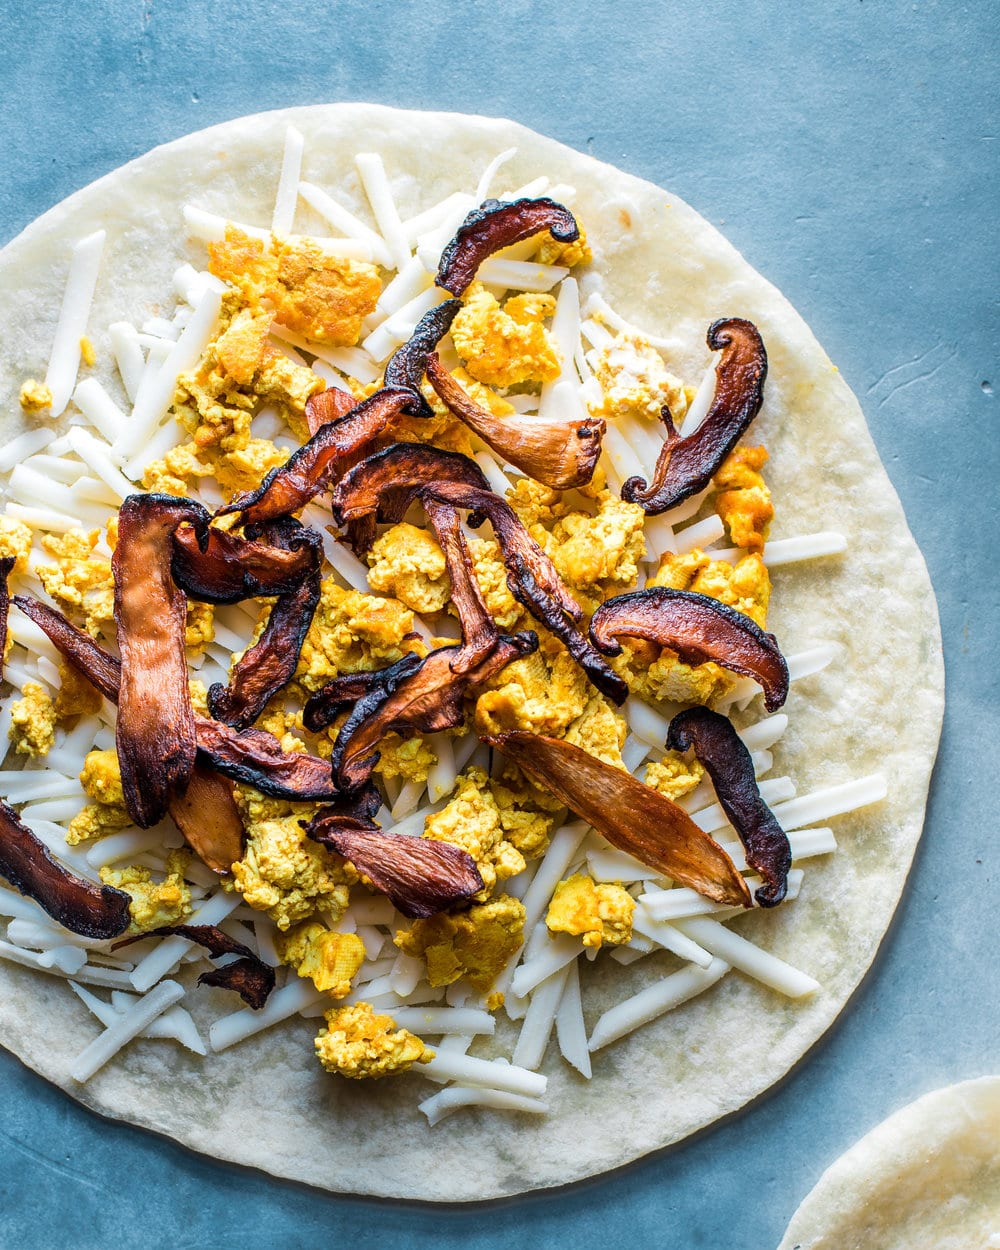 Vegan Quesadillas with Mushroom Bacon